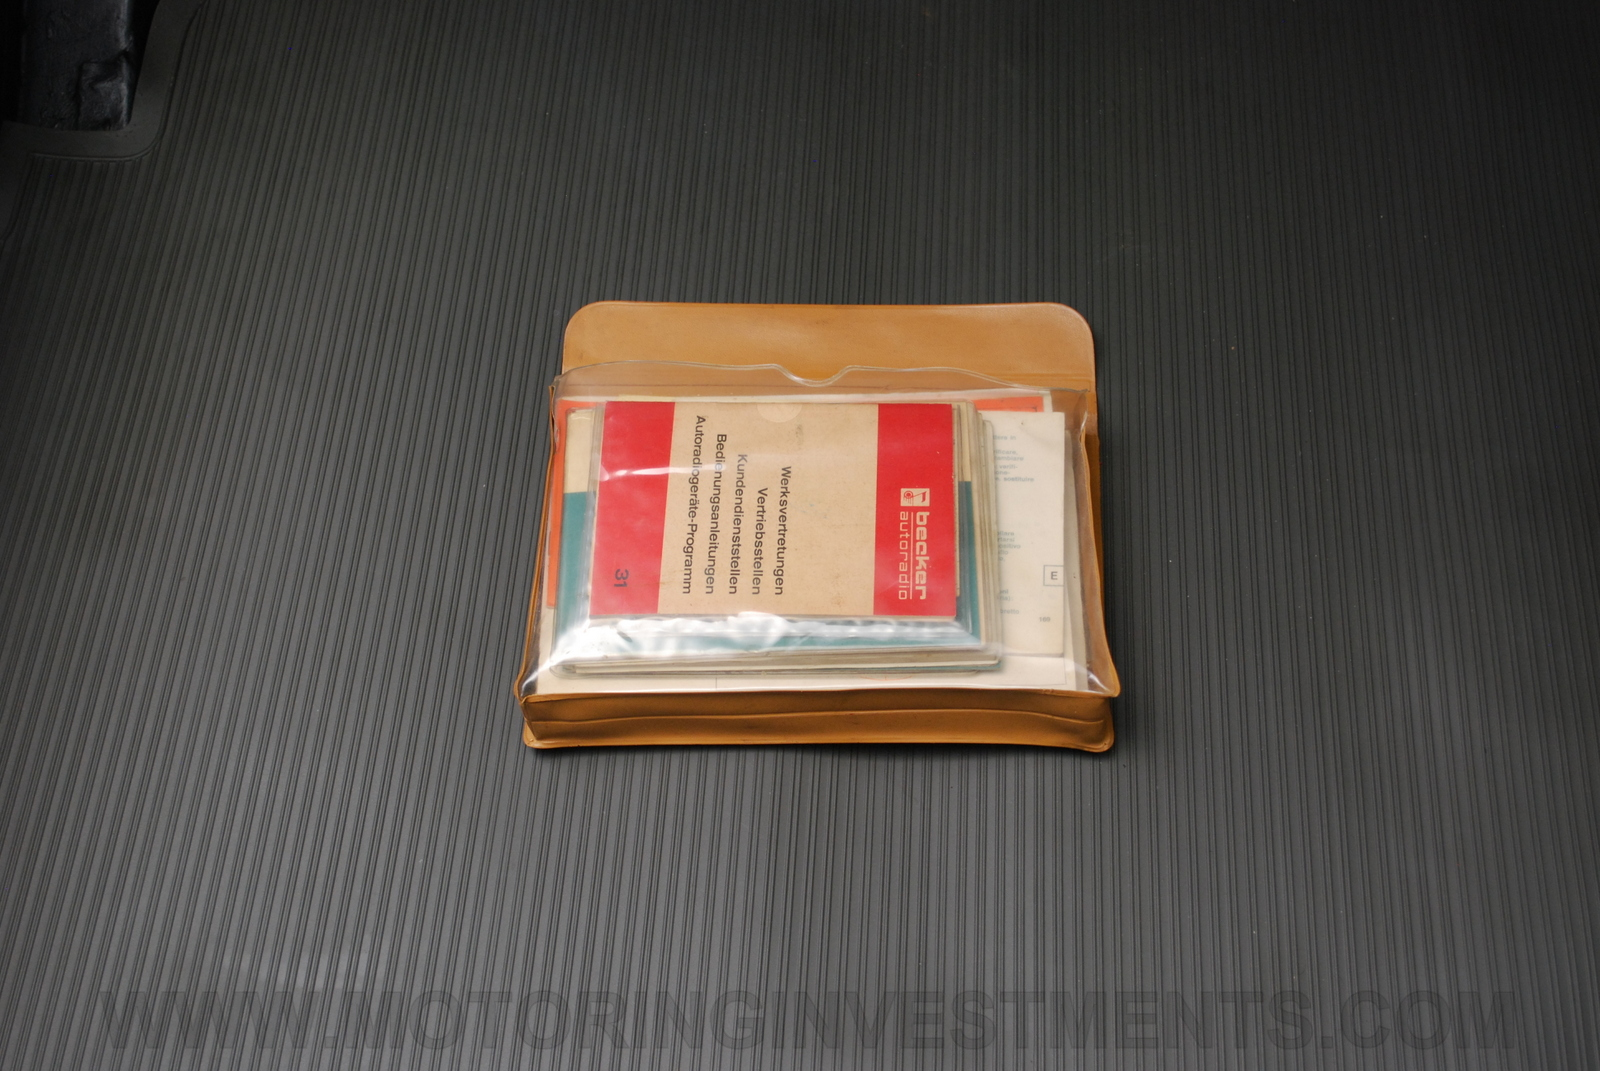 1971 mercedes 280sl silver red sold motoringinvestments com rh motoringinvestments com 280SL Vintage Luggage 1971 Mercedes 280SL